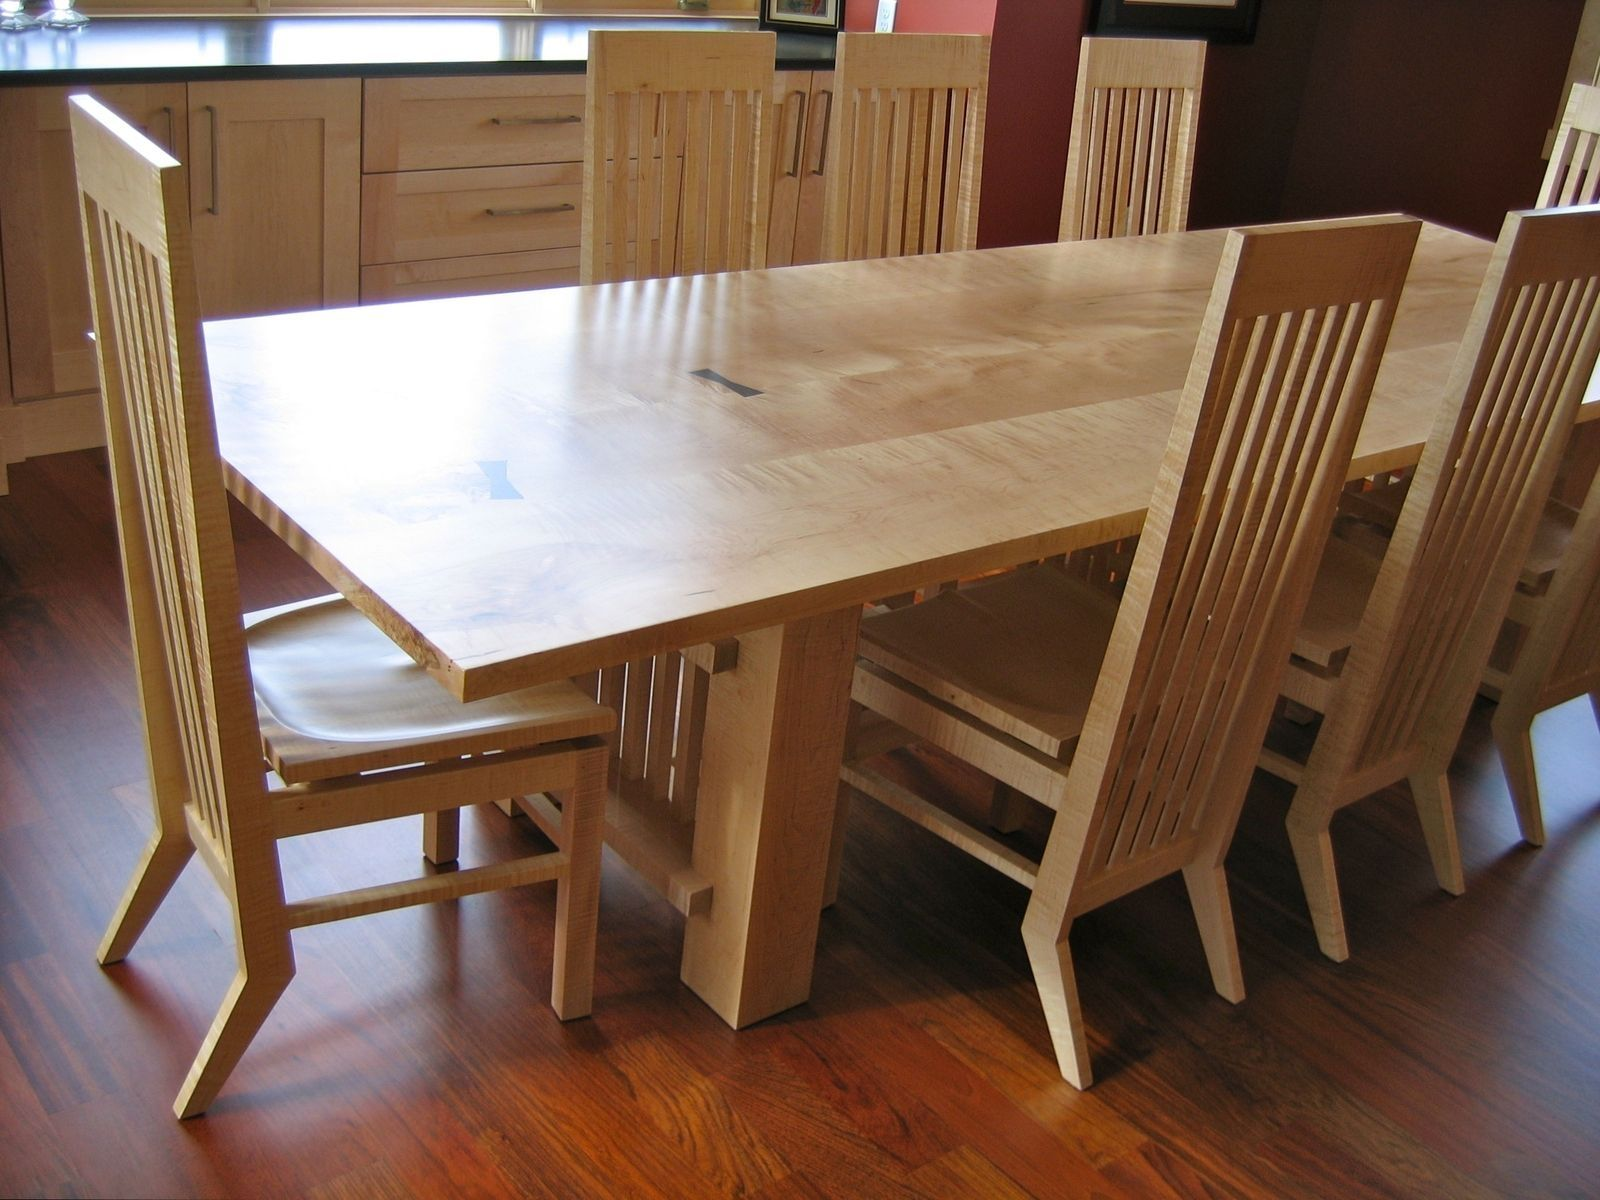 strong dining room chairs | Solid Maple Dining Table And Chairs - Dining room ideas